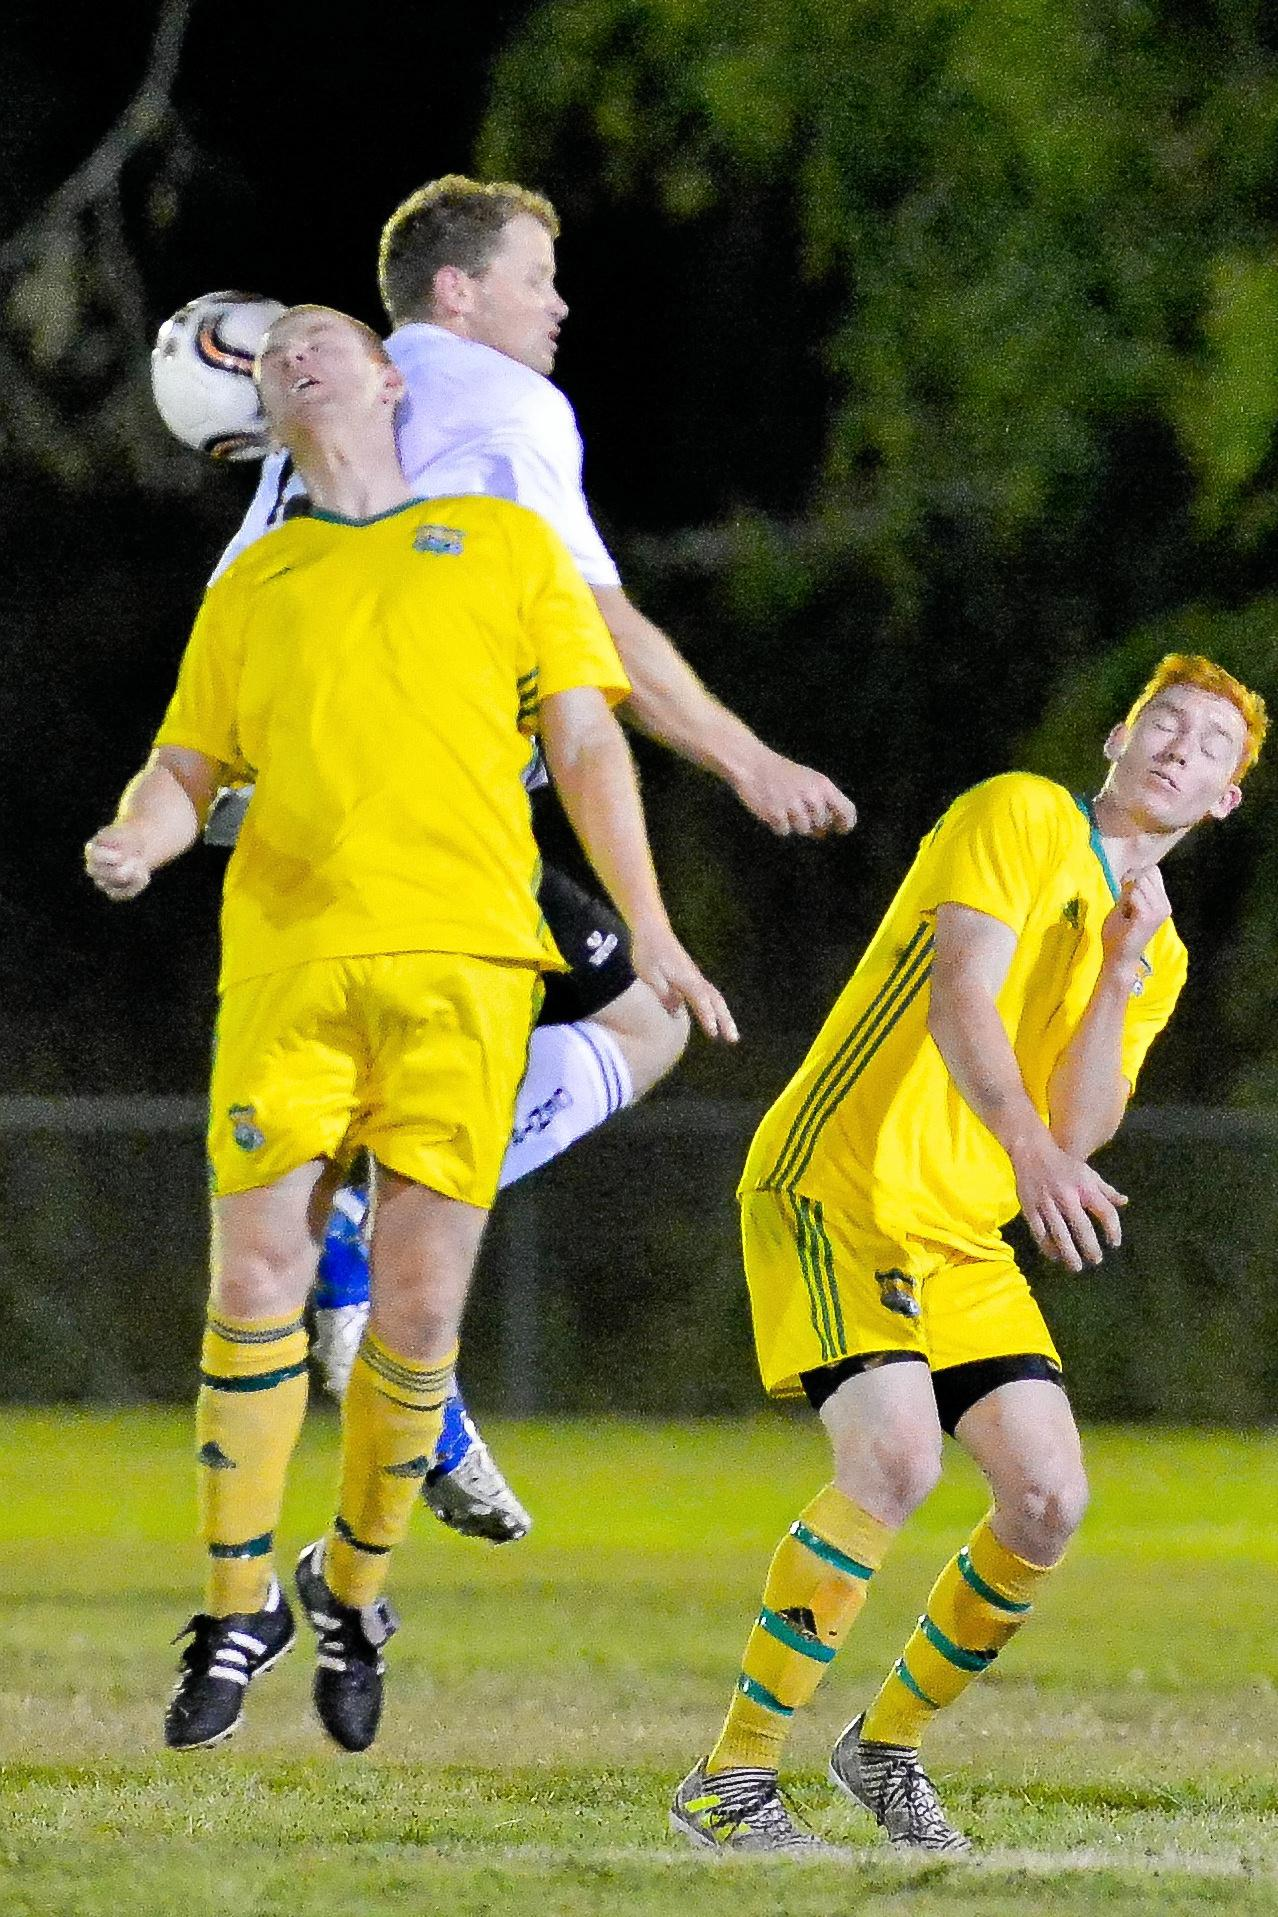 HEADS UP: BITS' Dominic Stockdale contests a header with teammate Luke Kenney watching on.